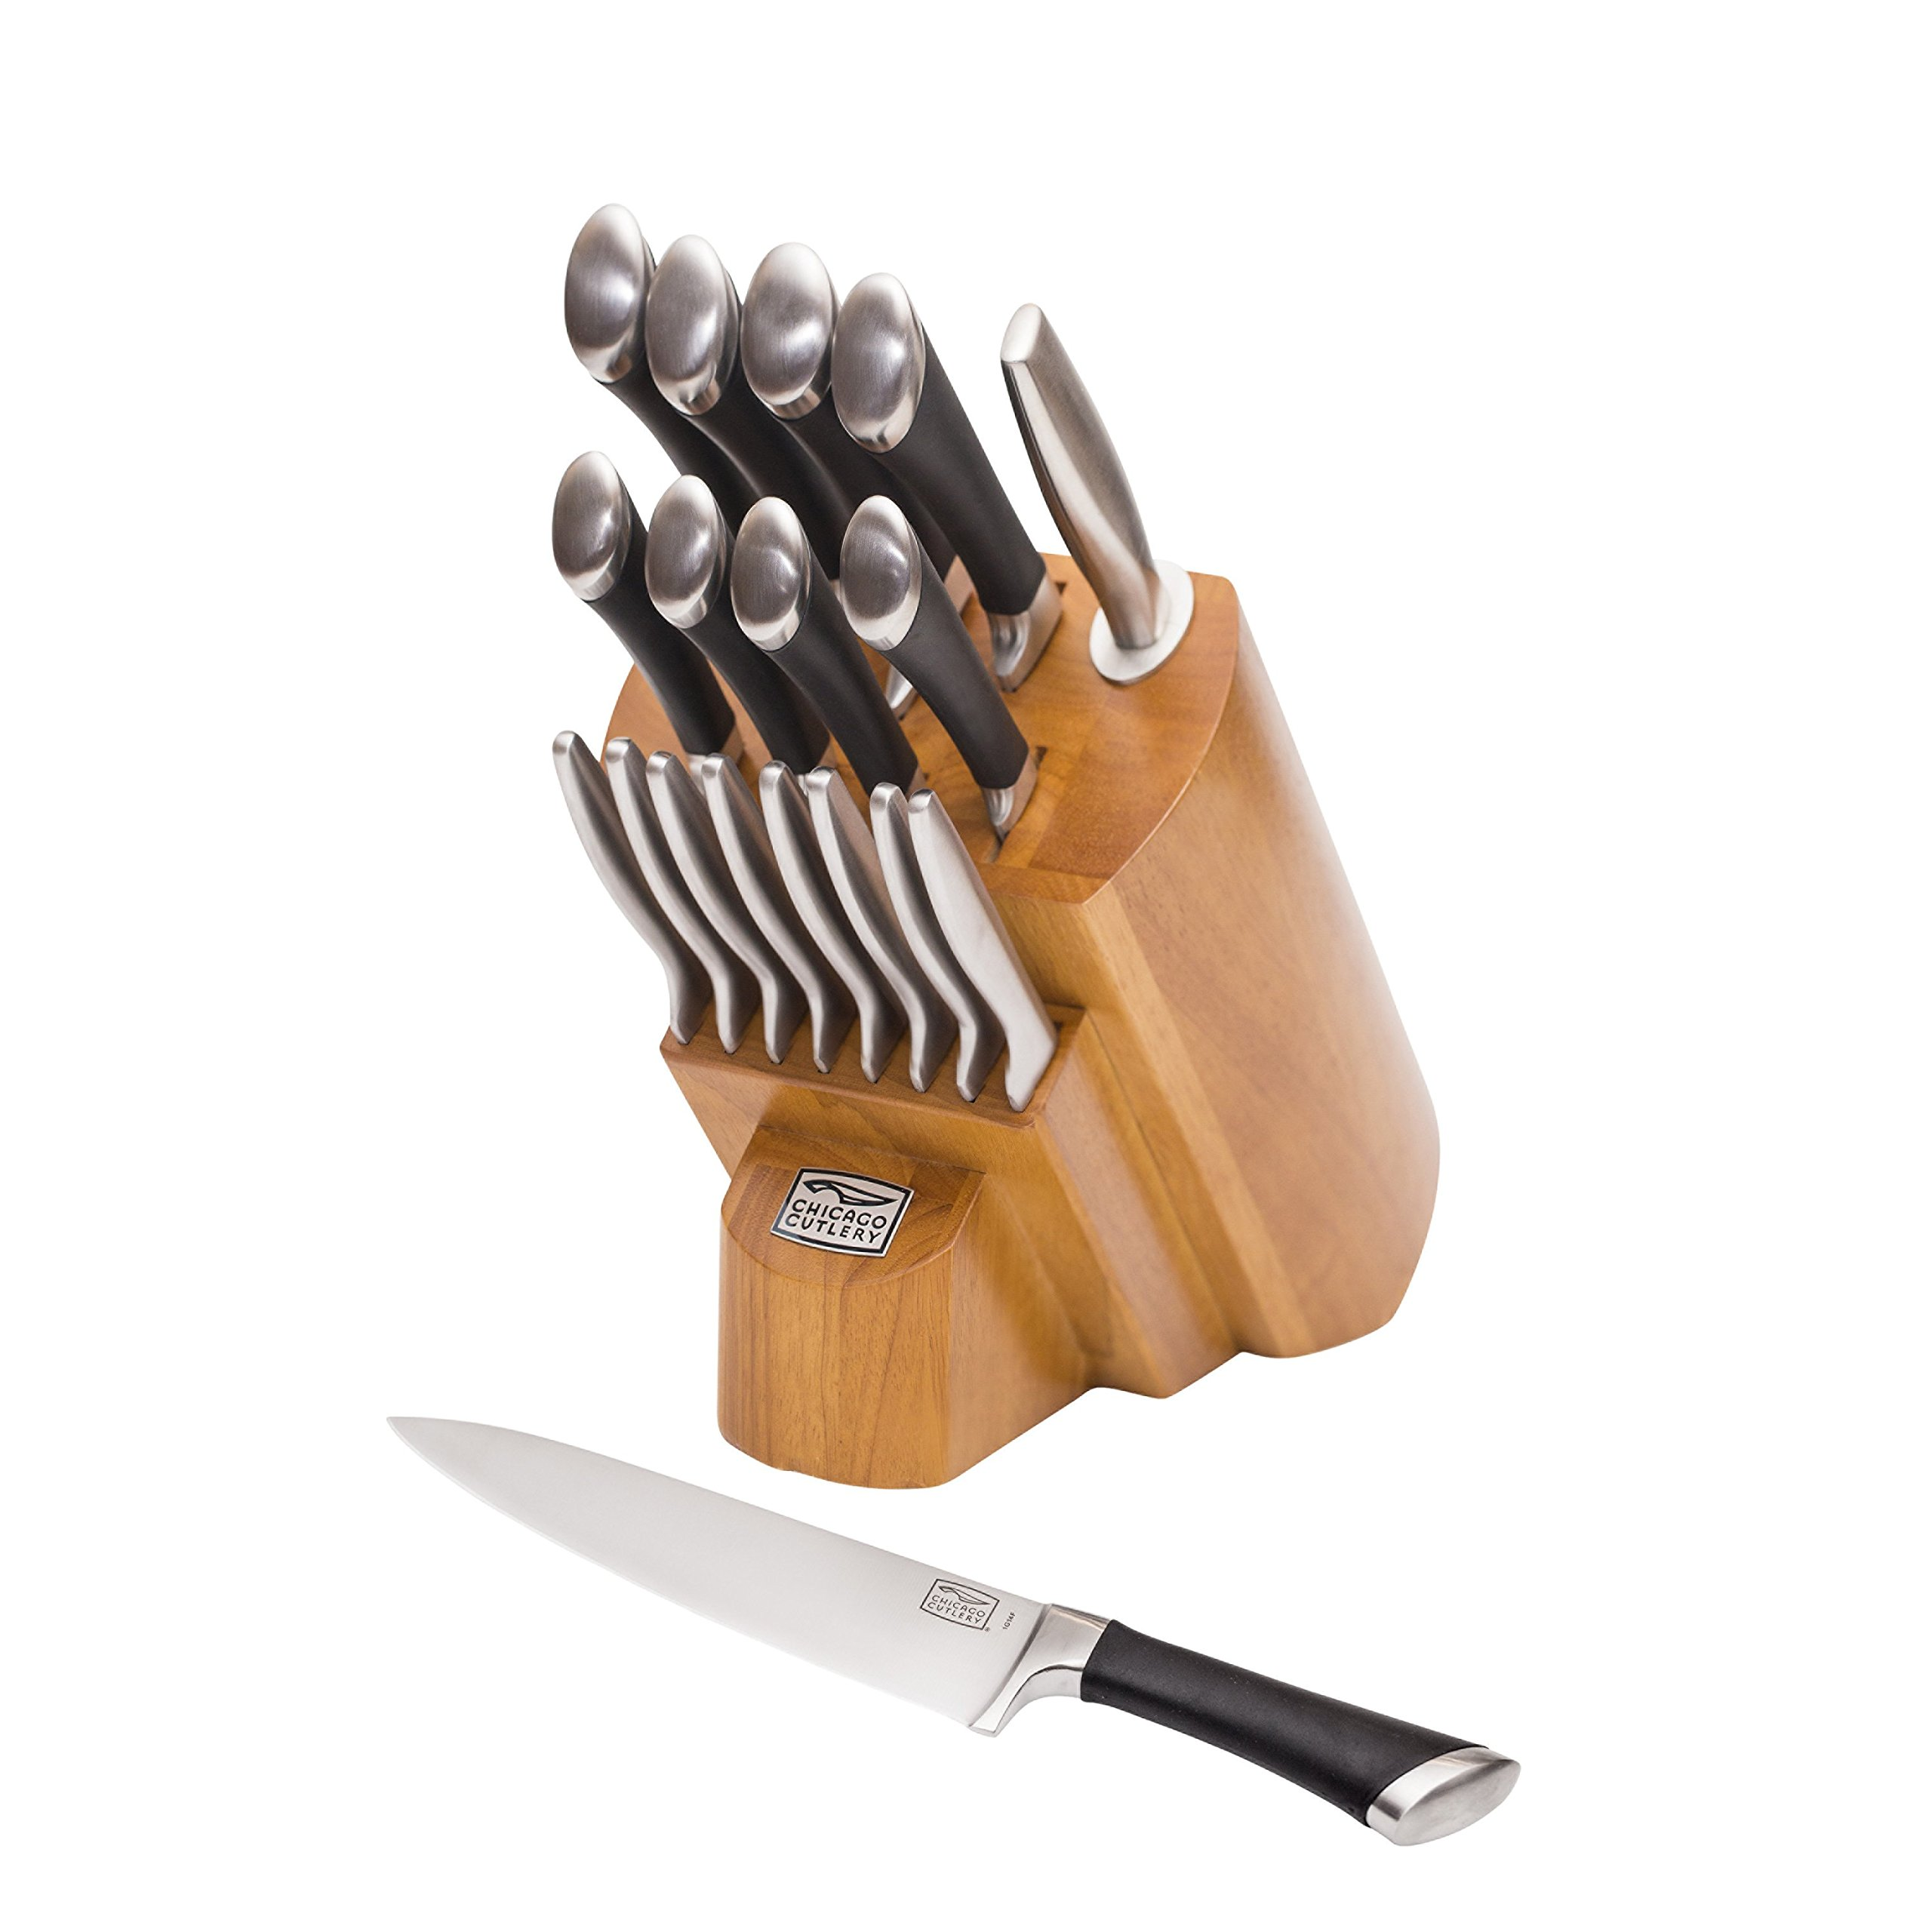 Chicago Cutlery Fusion 18pc Block Set by Chicago Cutlery